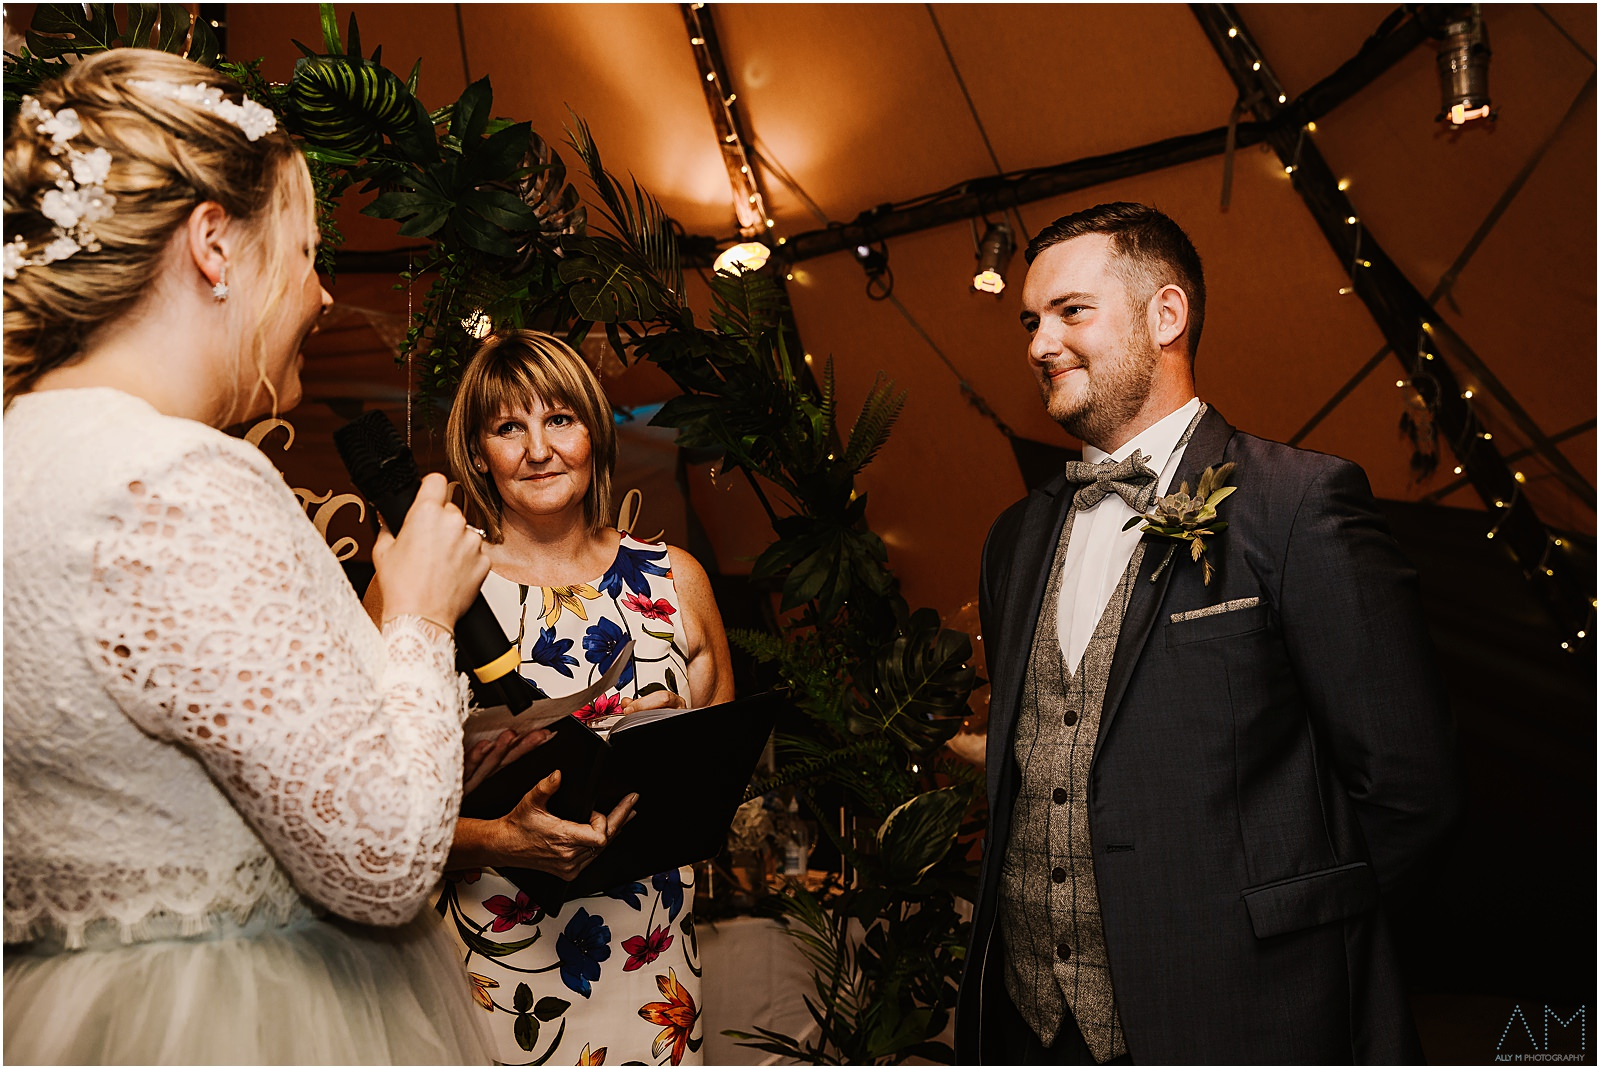 Bride and groom to be smiling at each other